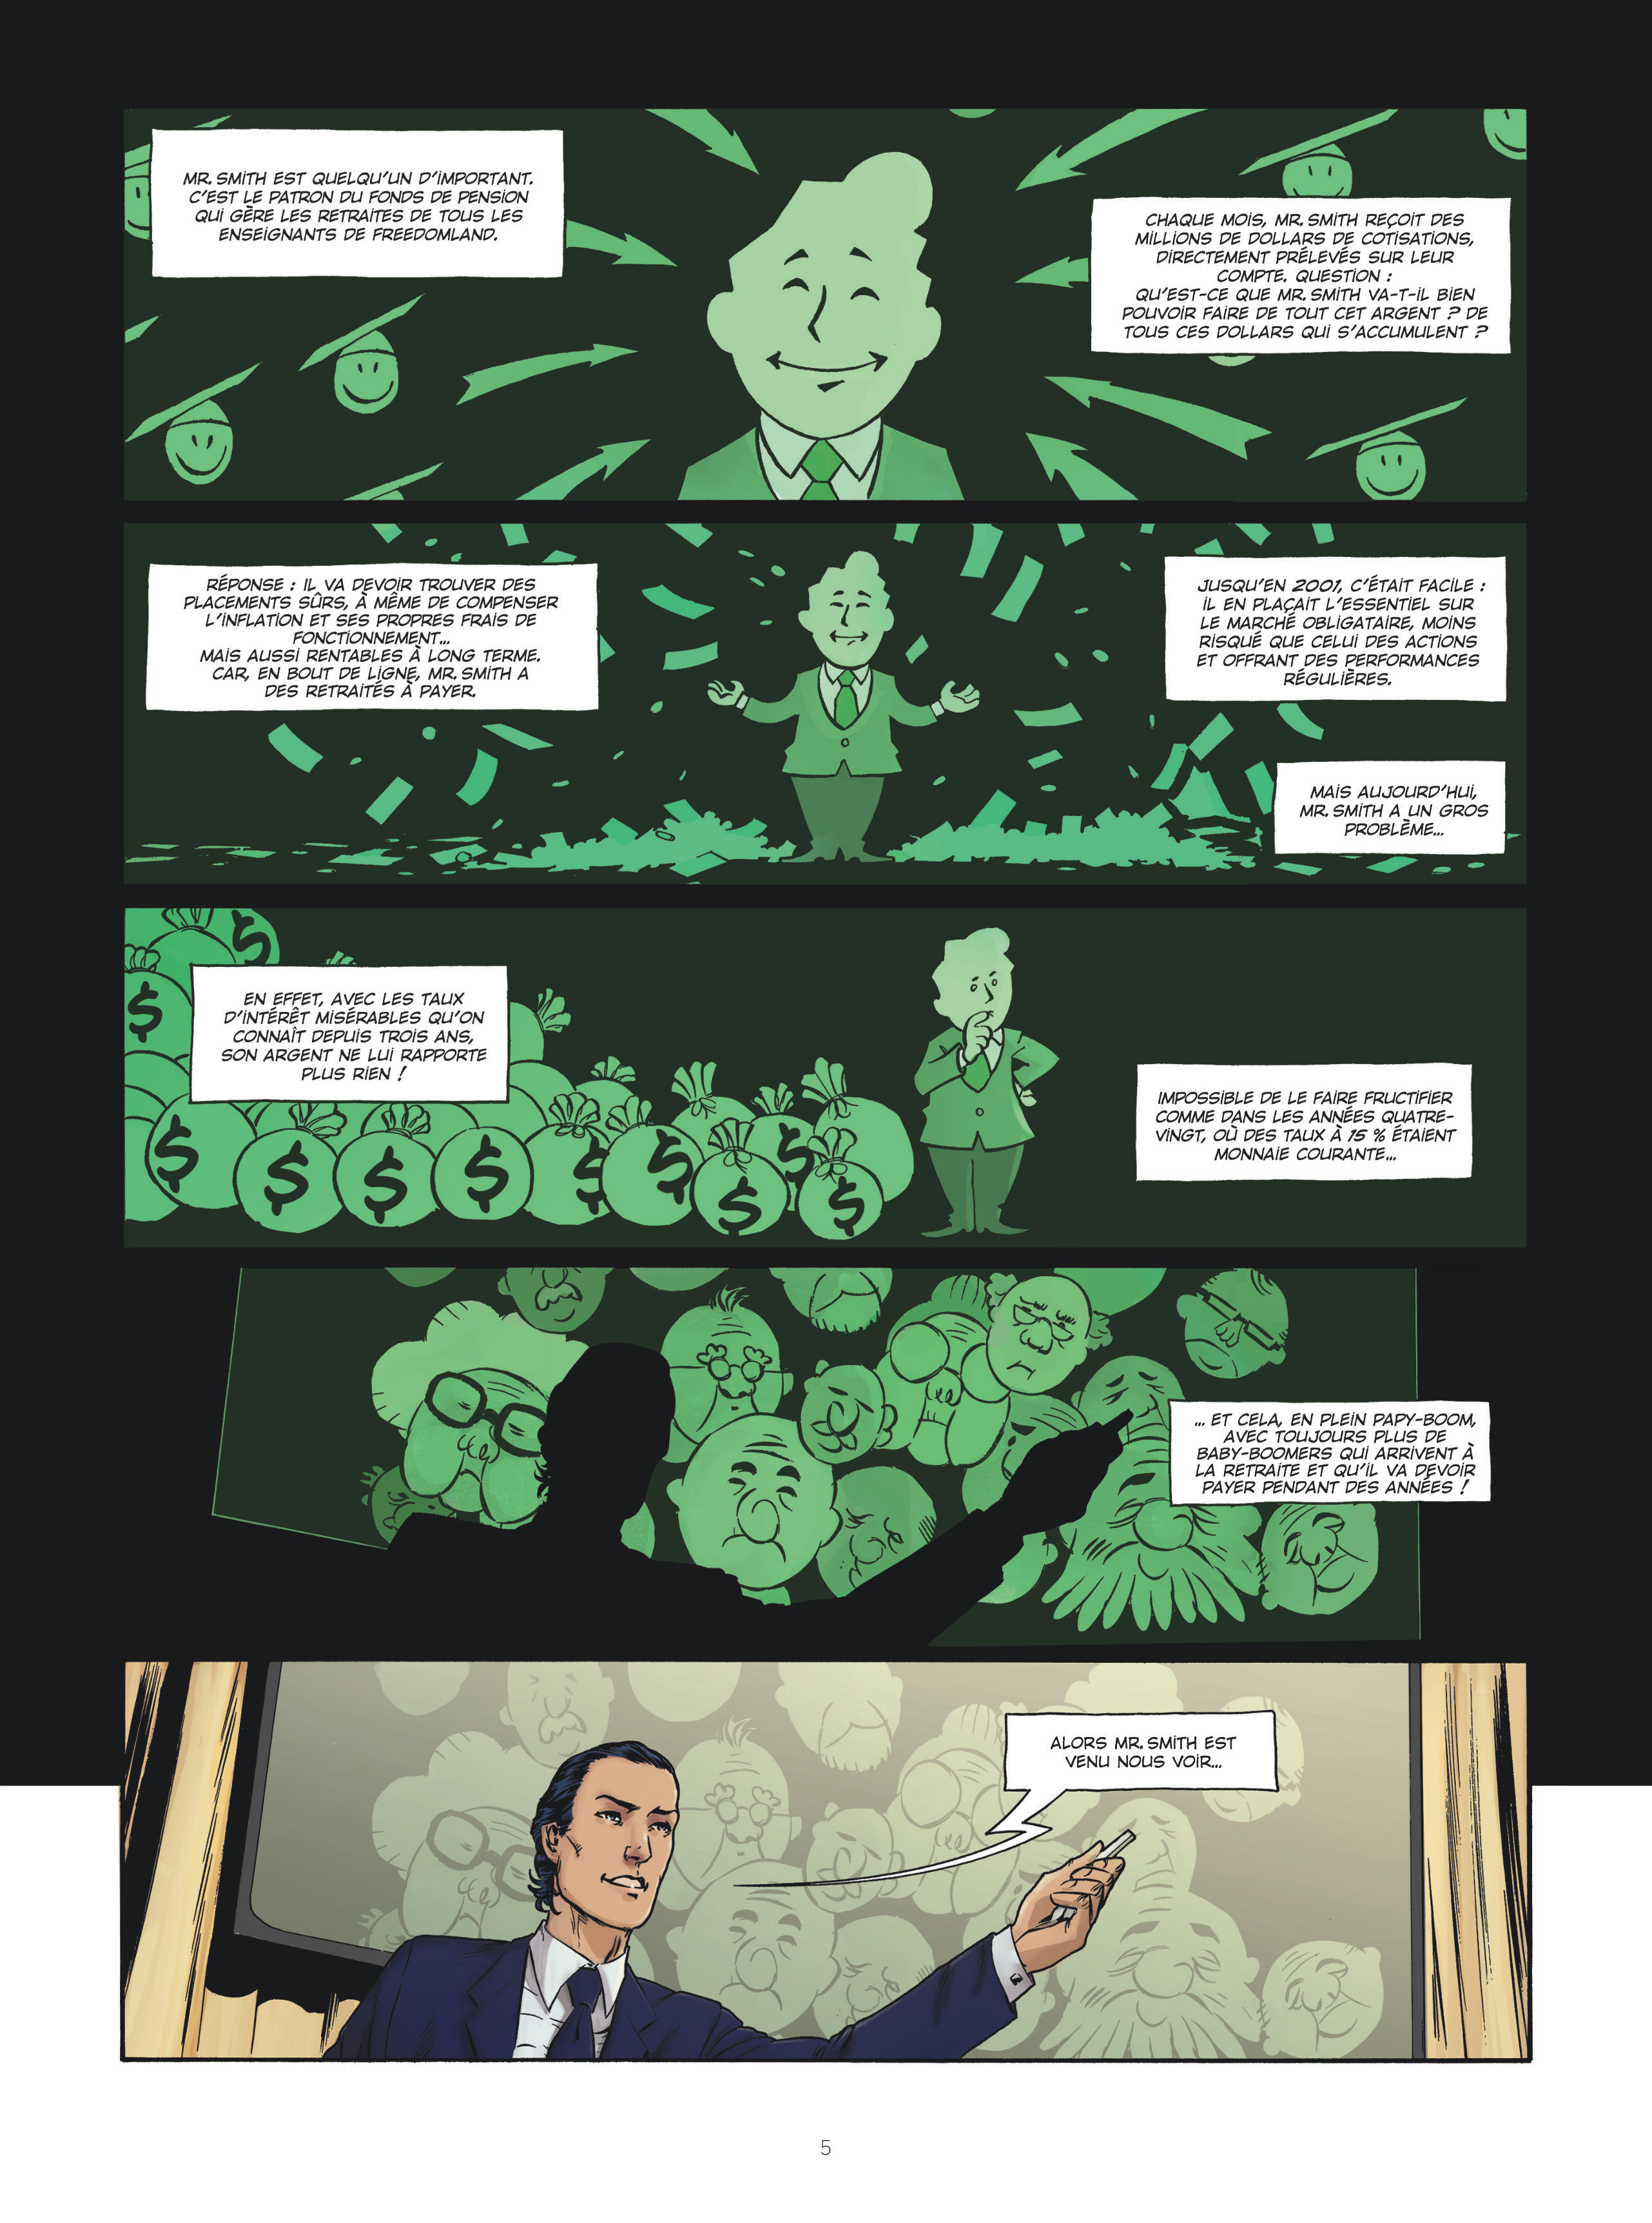 Hedge_fund#2_Page 5